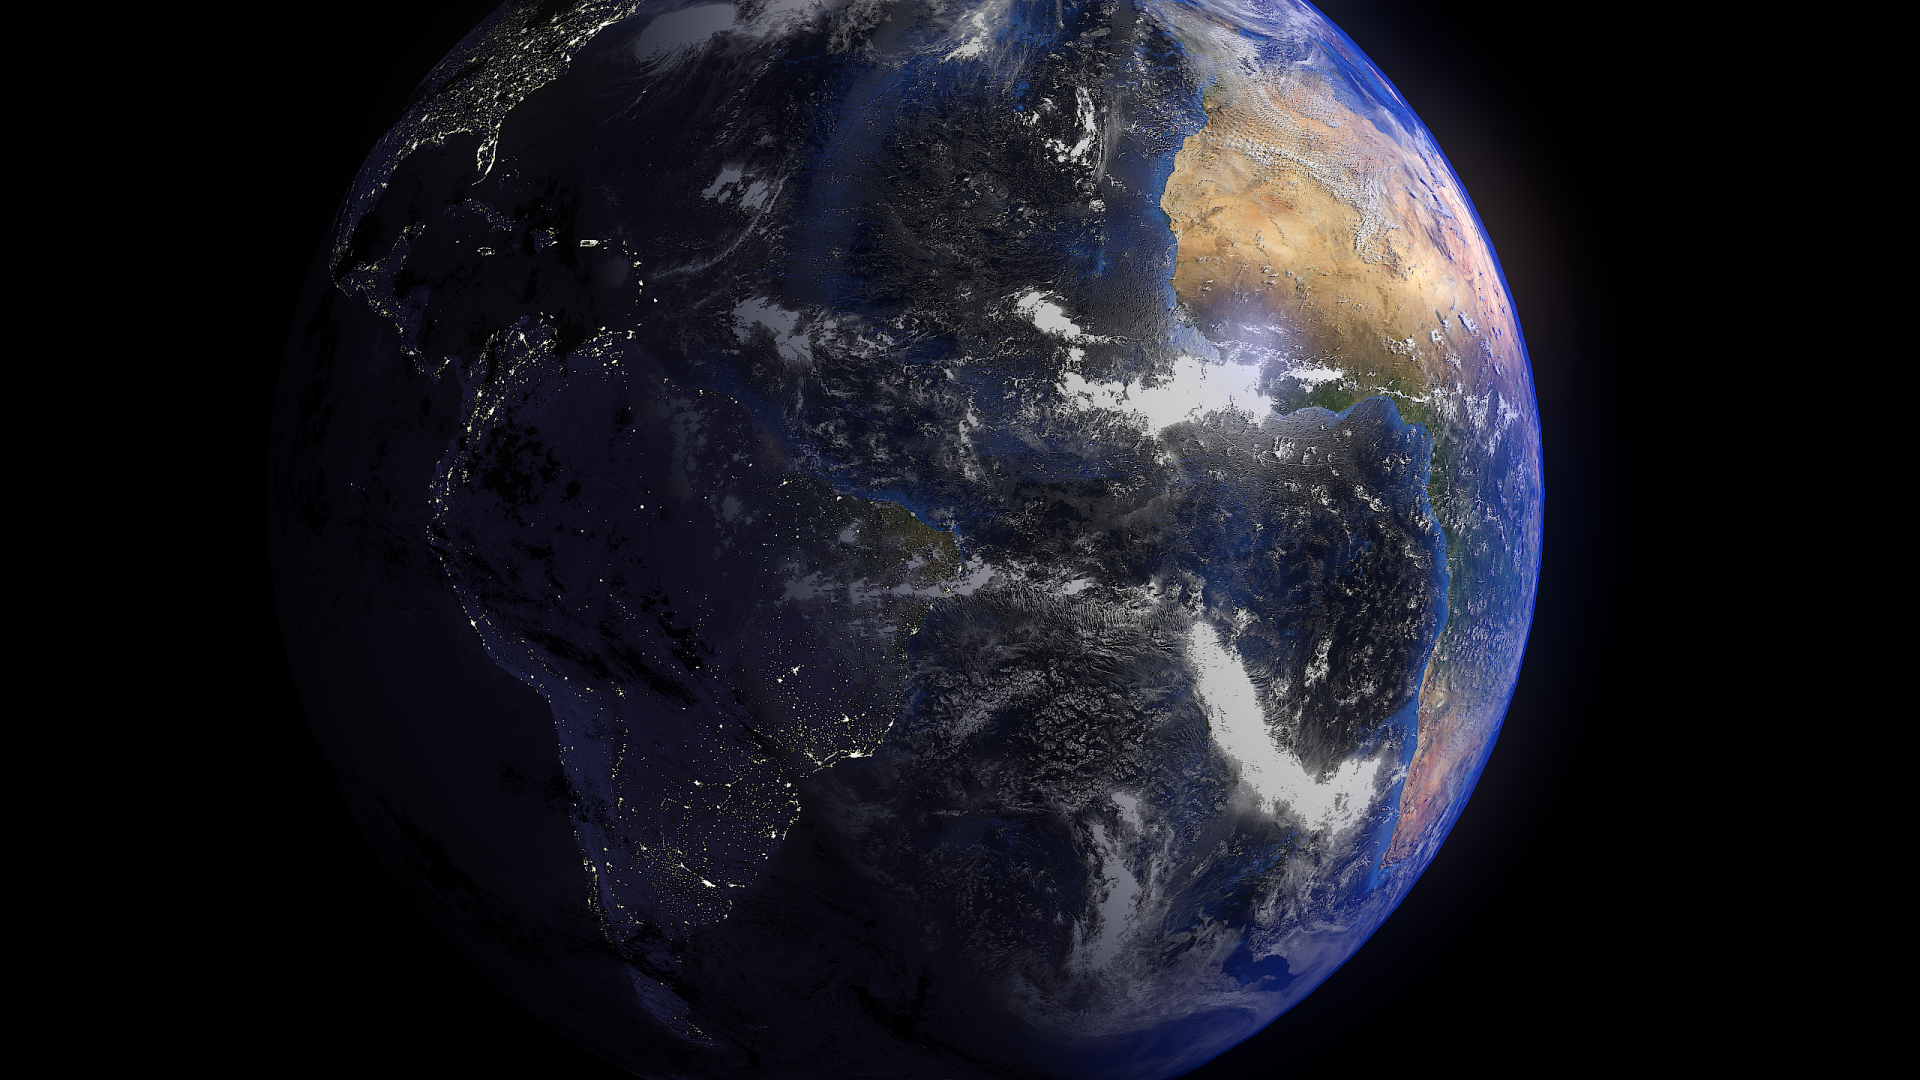 earth 10k 3d model 3ds fbx blend dae obj 209748